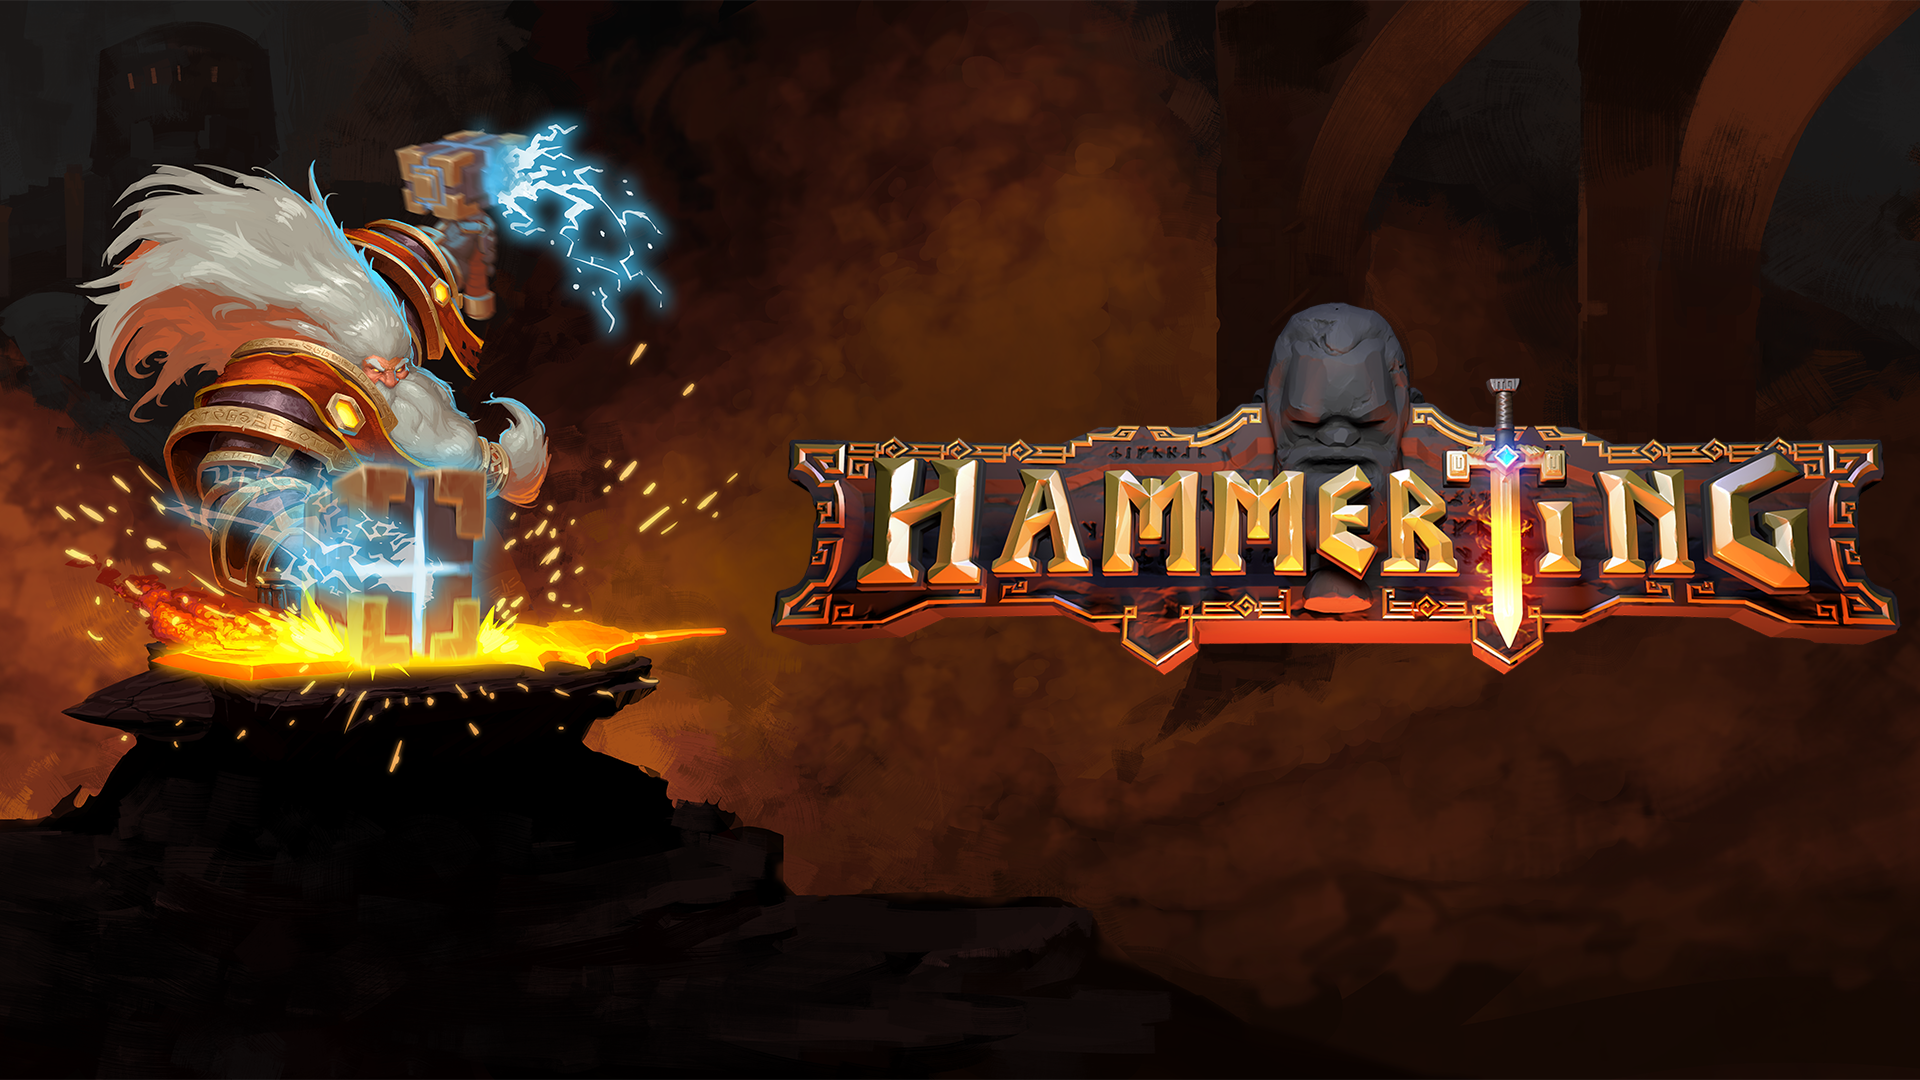 Hammerting Release Date Announcement!